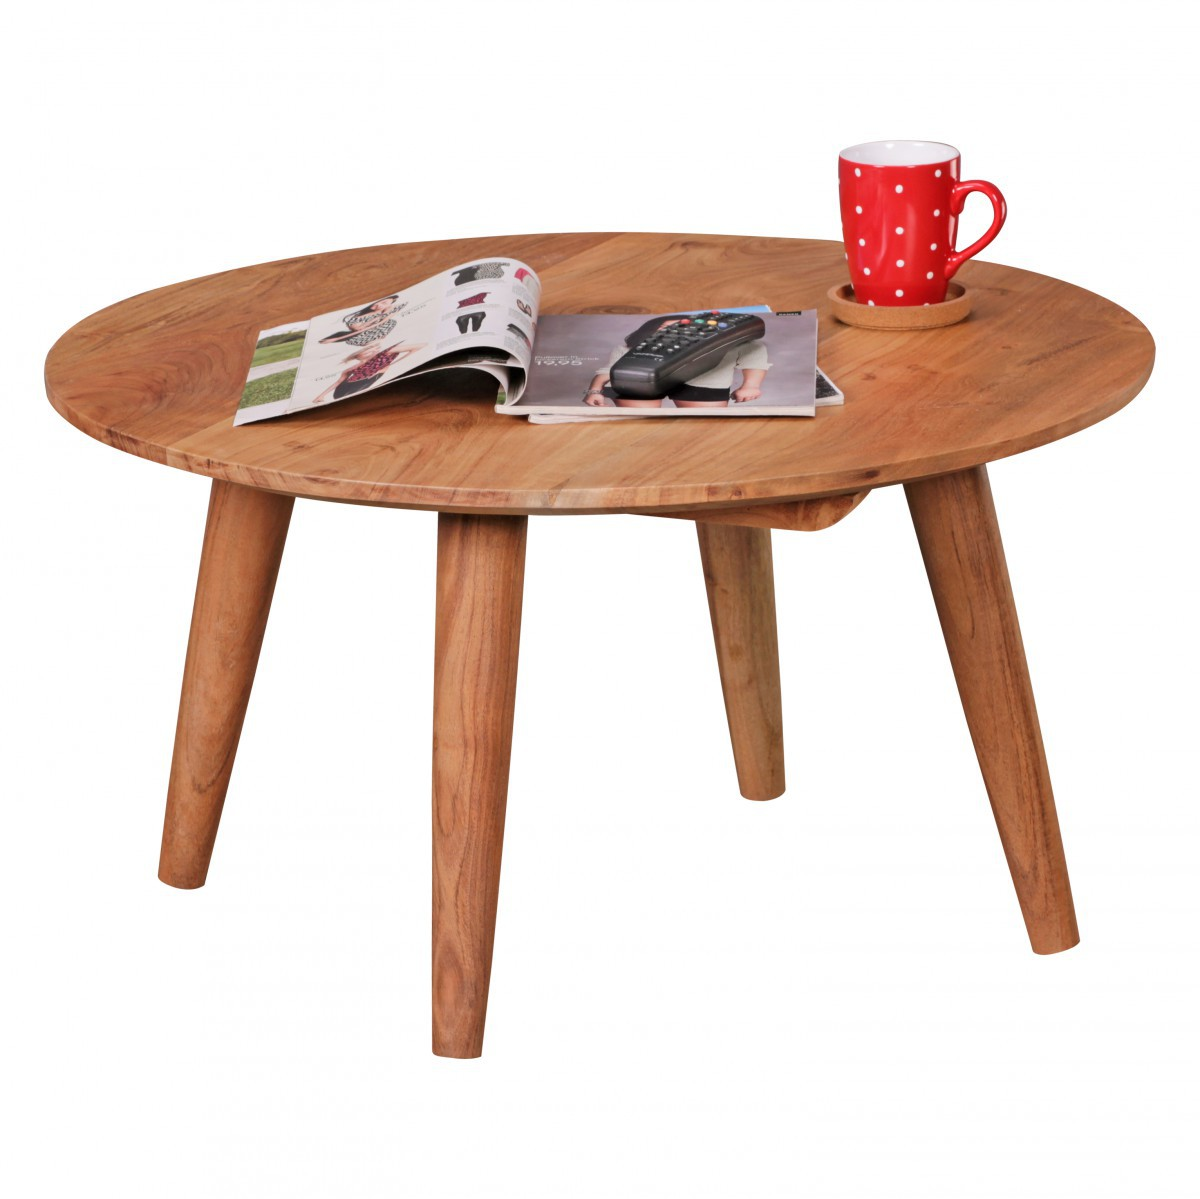 Finebuy table basse en bois massif acacia table basse ronde 75 x 40 cm ferme - Table basse bois exotique massif ...